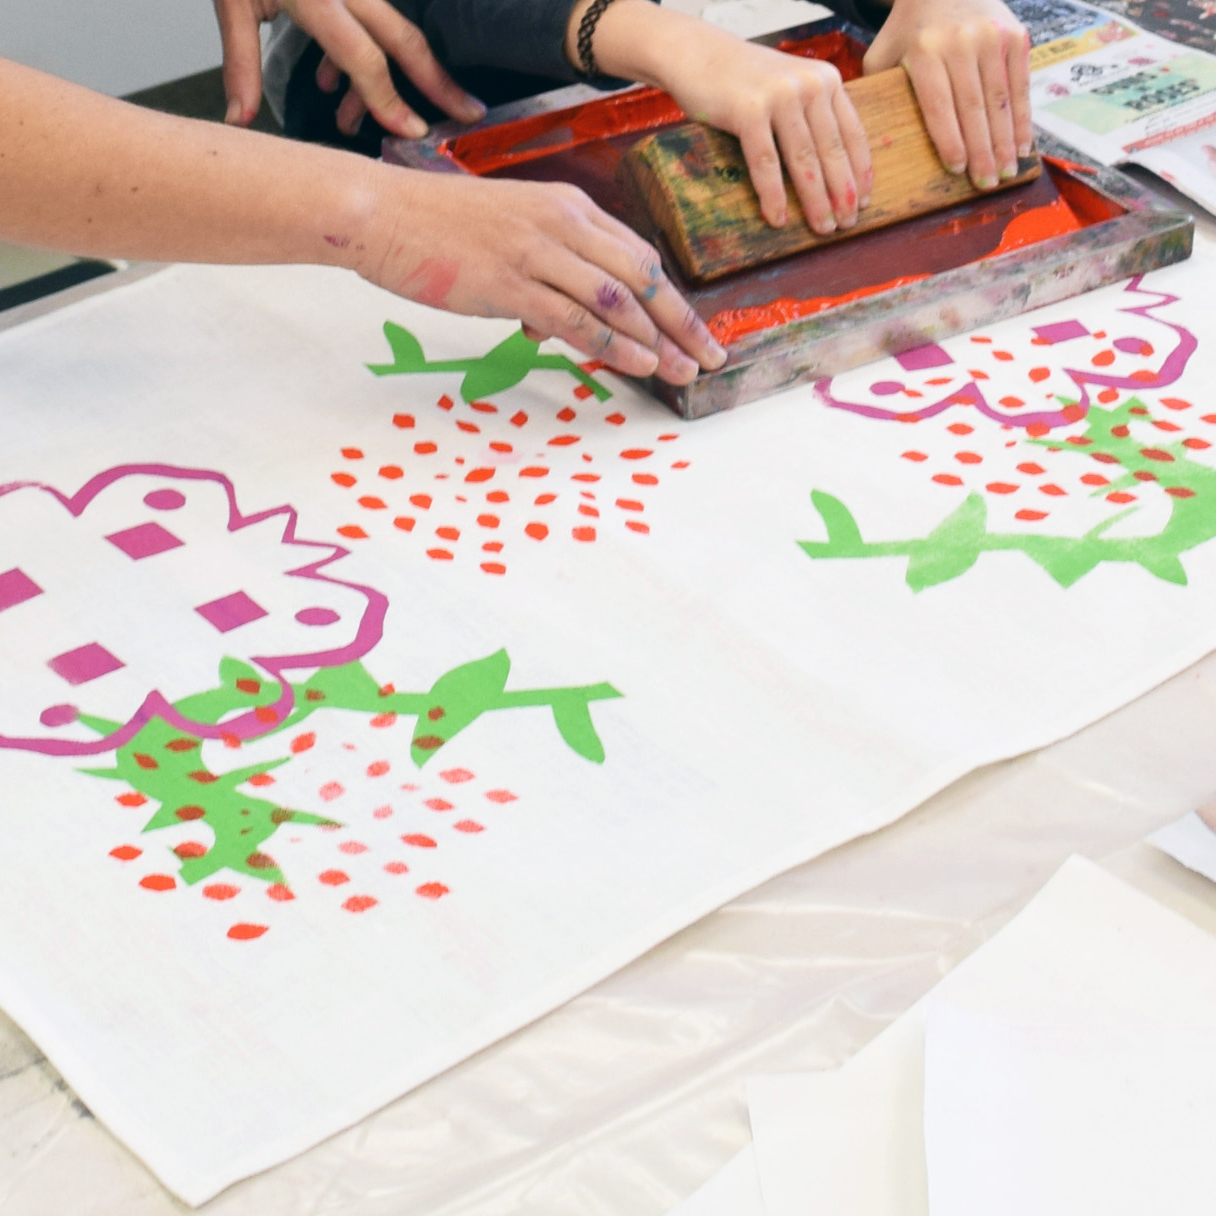 Screen printed Tea Towels - During the Screen print a botanical design on a linen tea towel. Learn the process of screen printing using paper stencils and mono print on acetate to create your own unique design.12pm - 3pmSuitable for 15+ yrs$70 | $63 Members